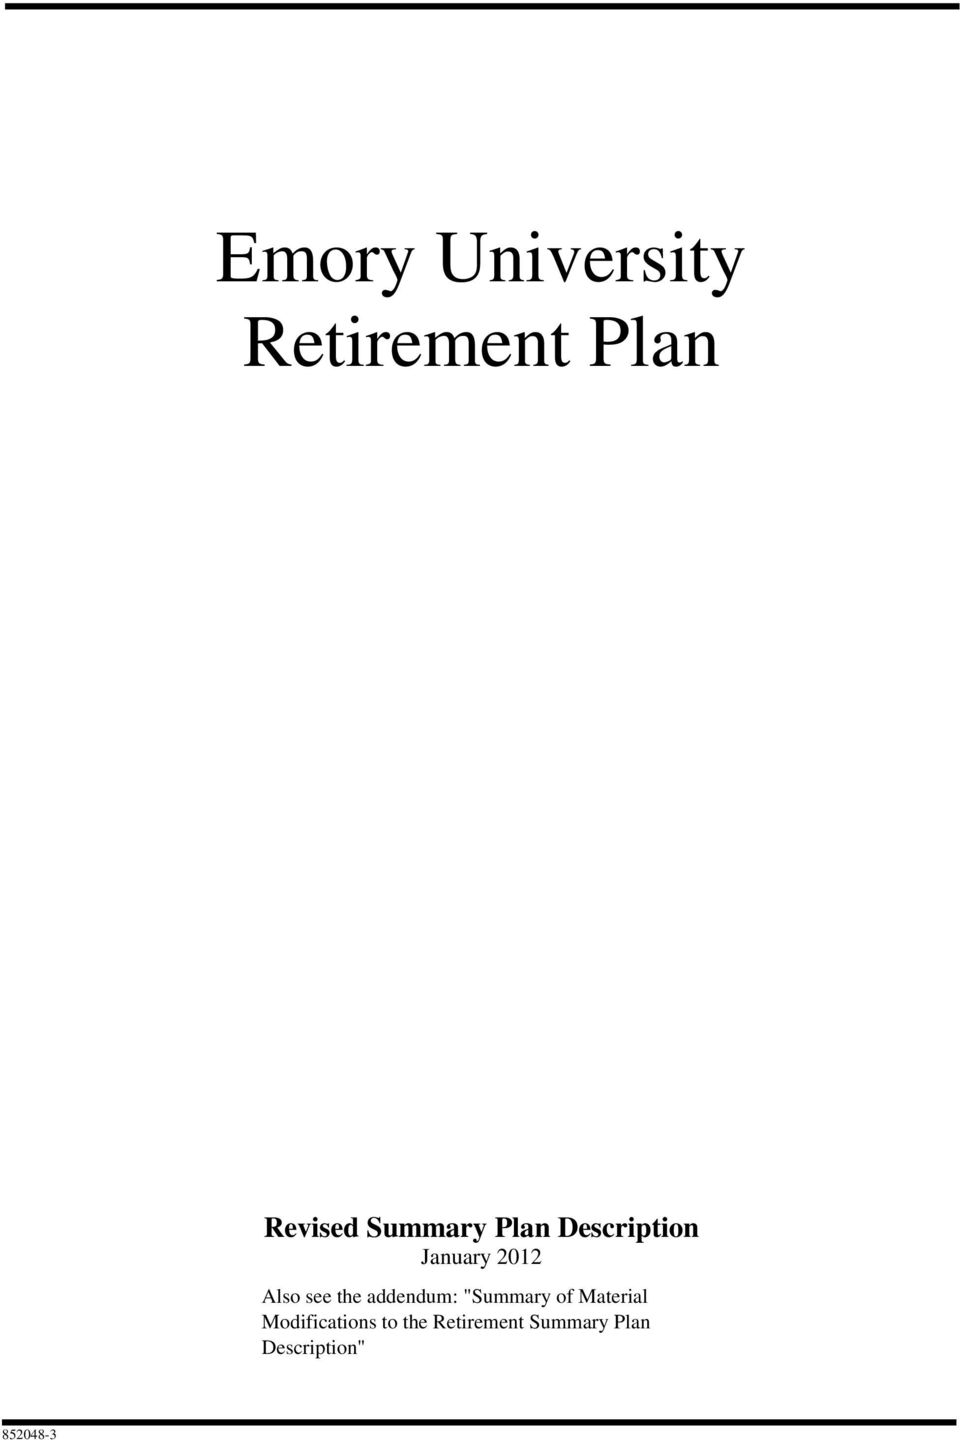 emory university annuity investment policy